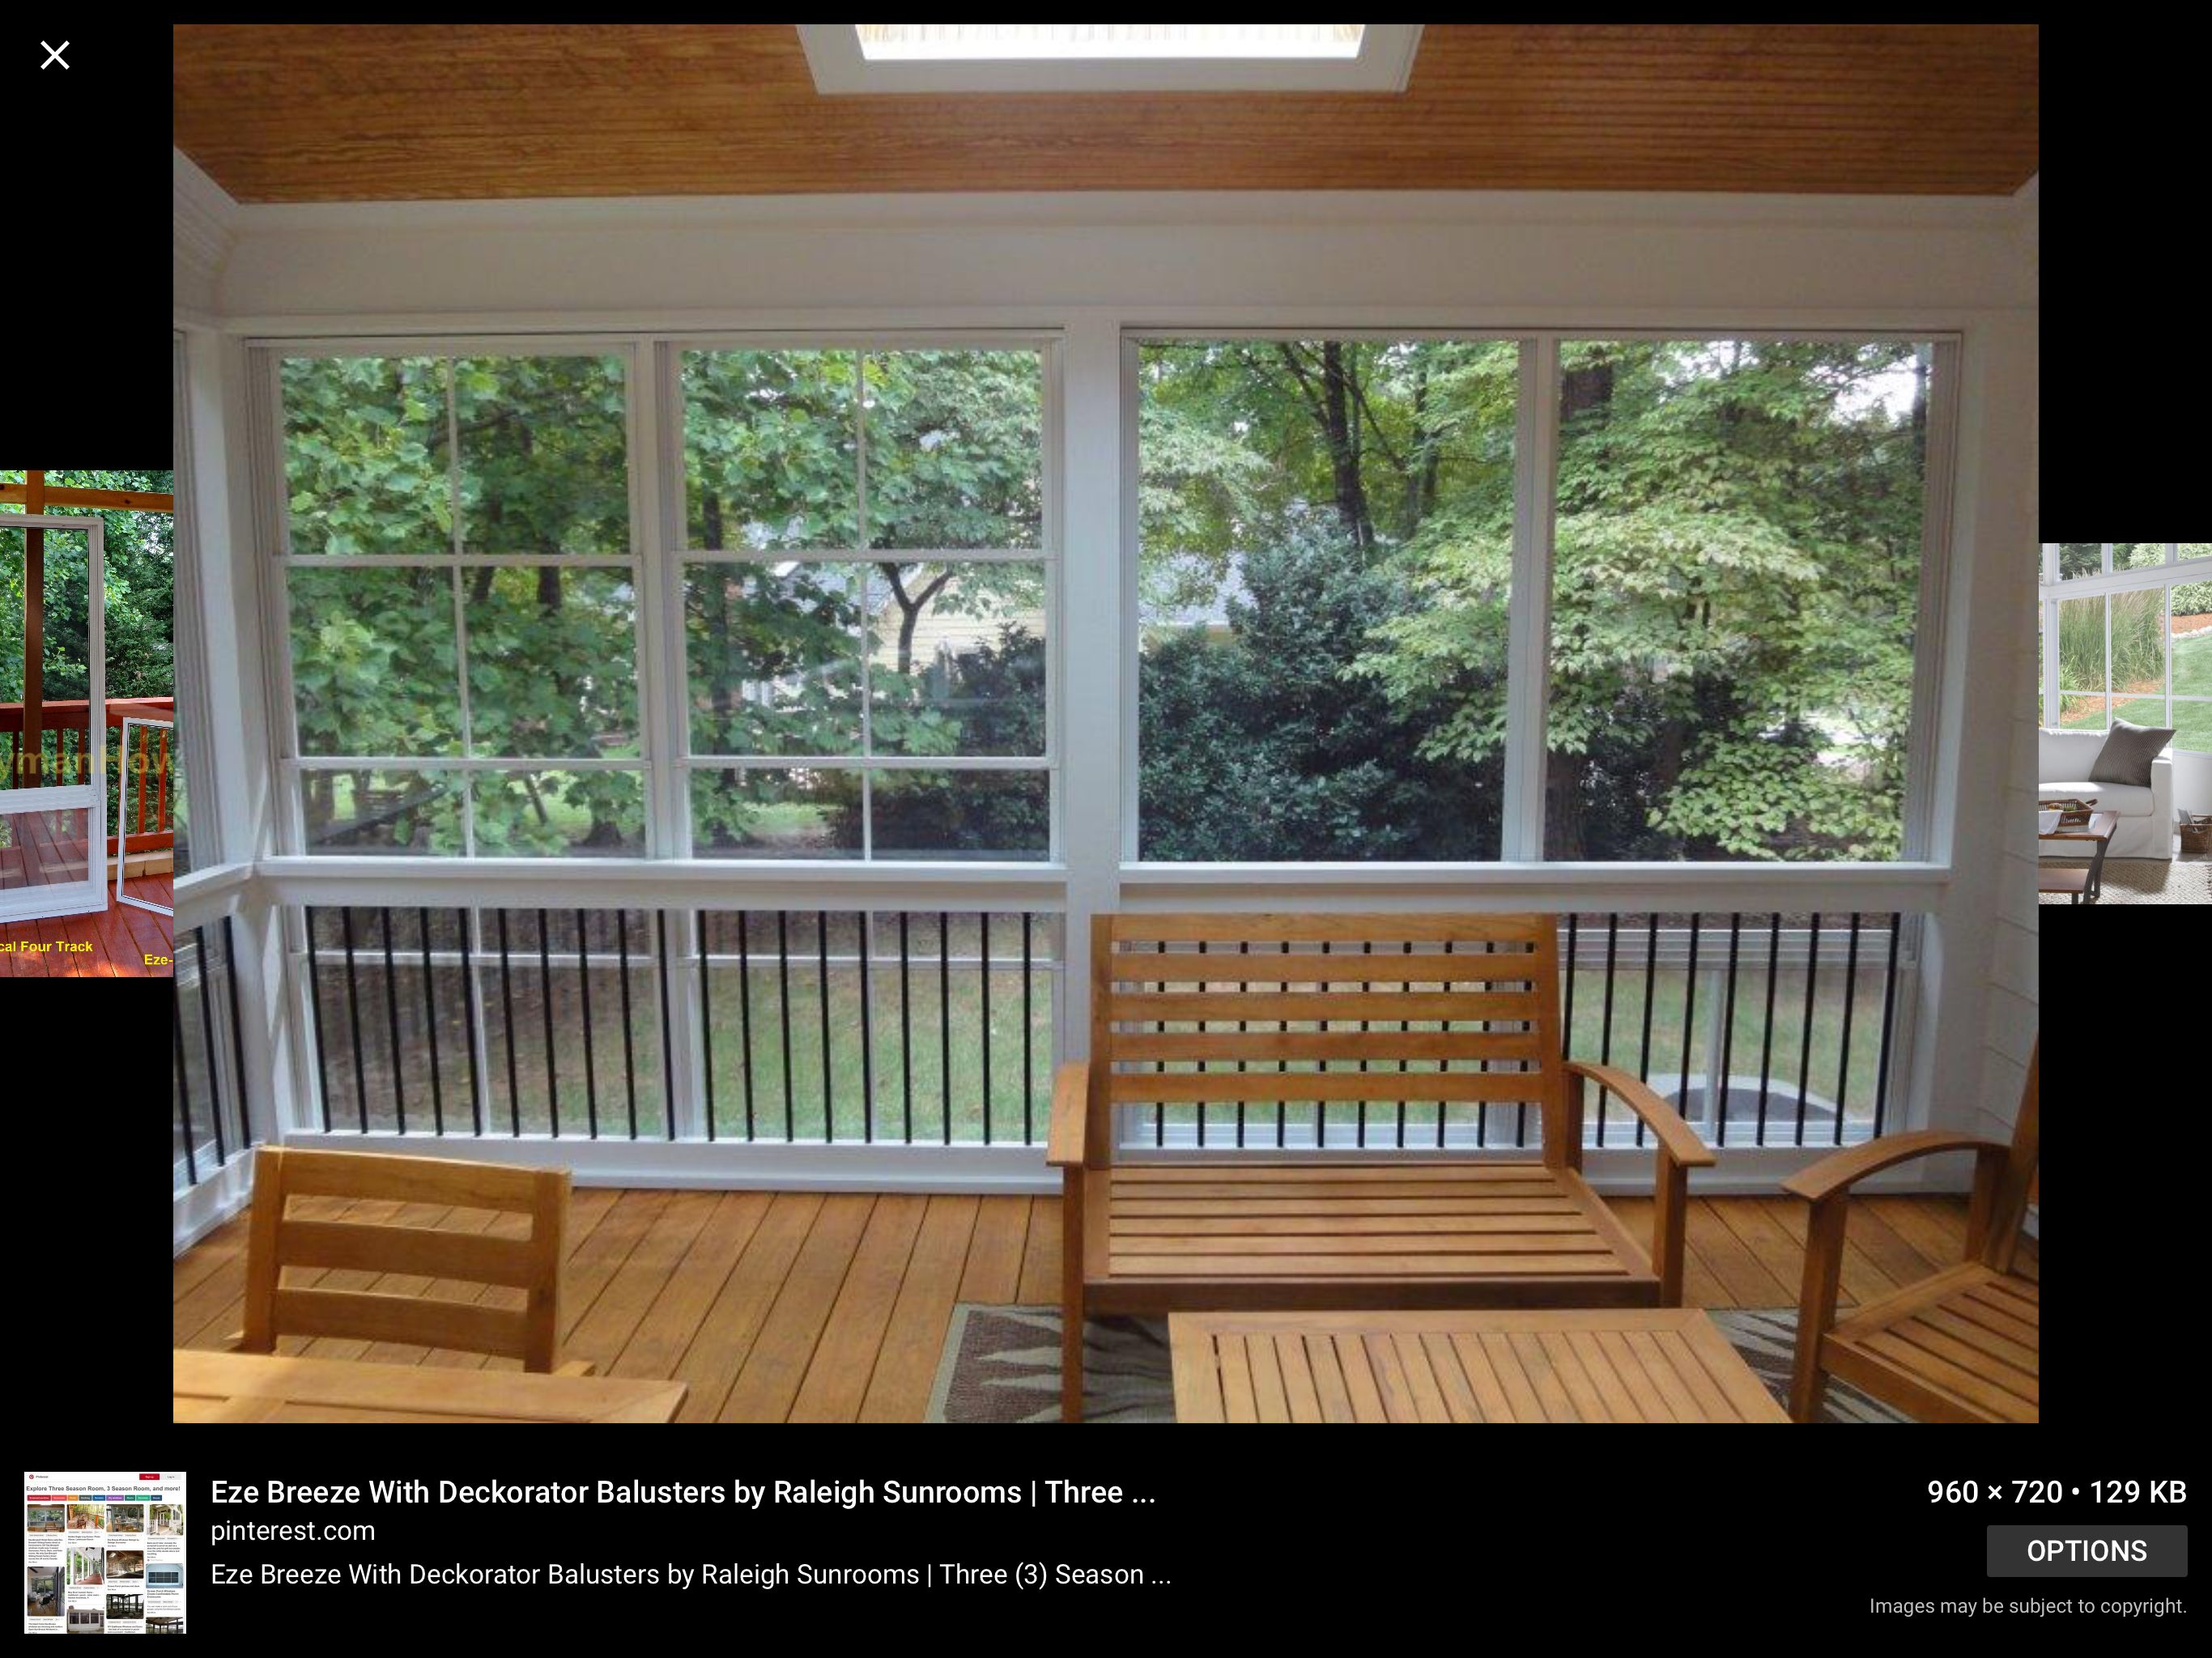 3 season porch window ideas  pin by leslie minkoff on new porch  pinterest  porch and backyard